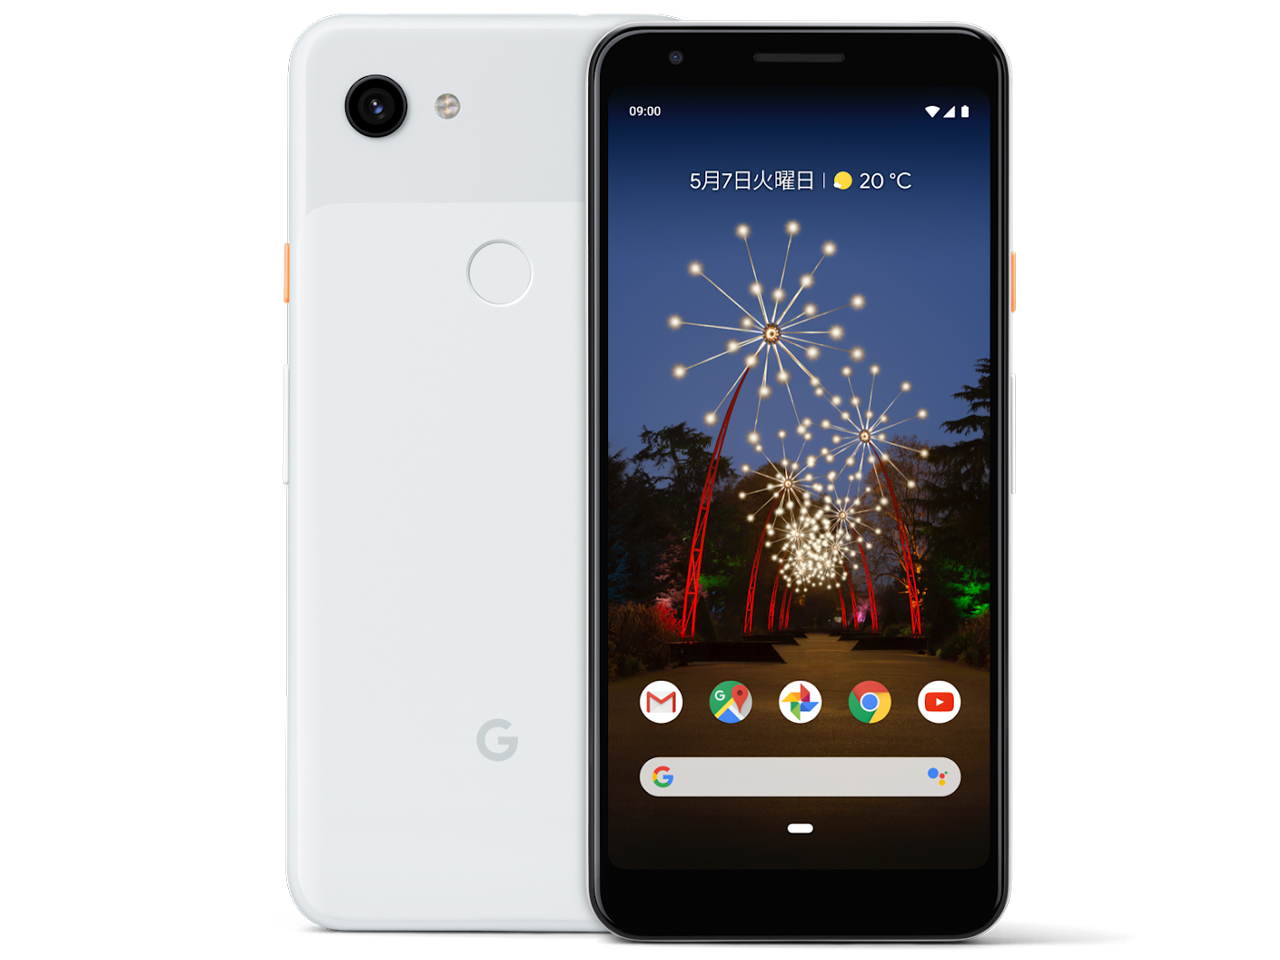 Google Pixel 3a SIMフリー [Clearly White] の製品画像